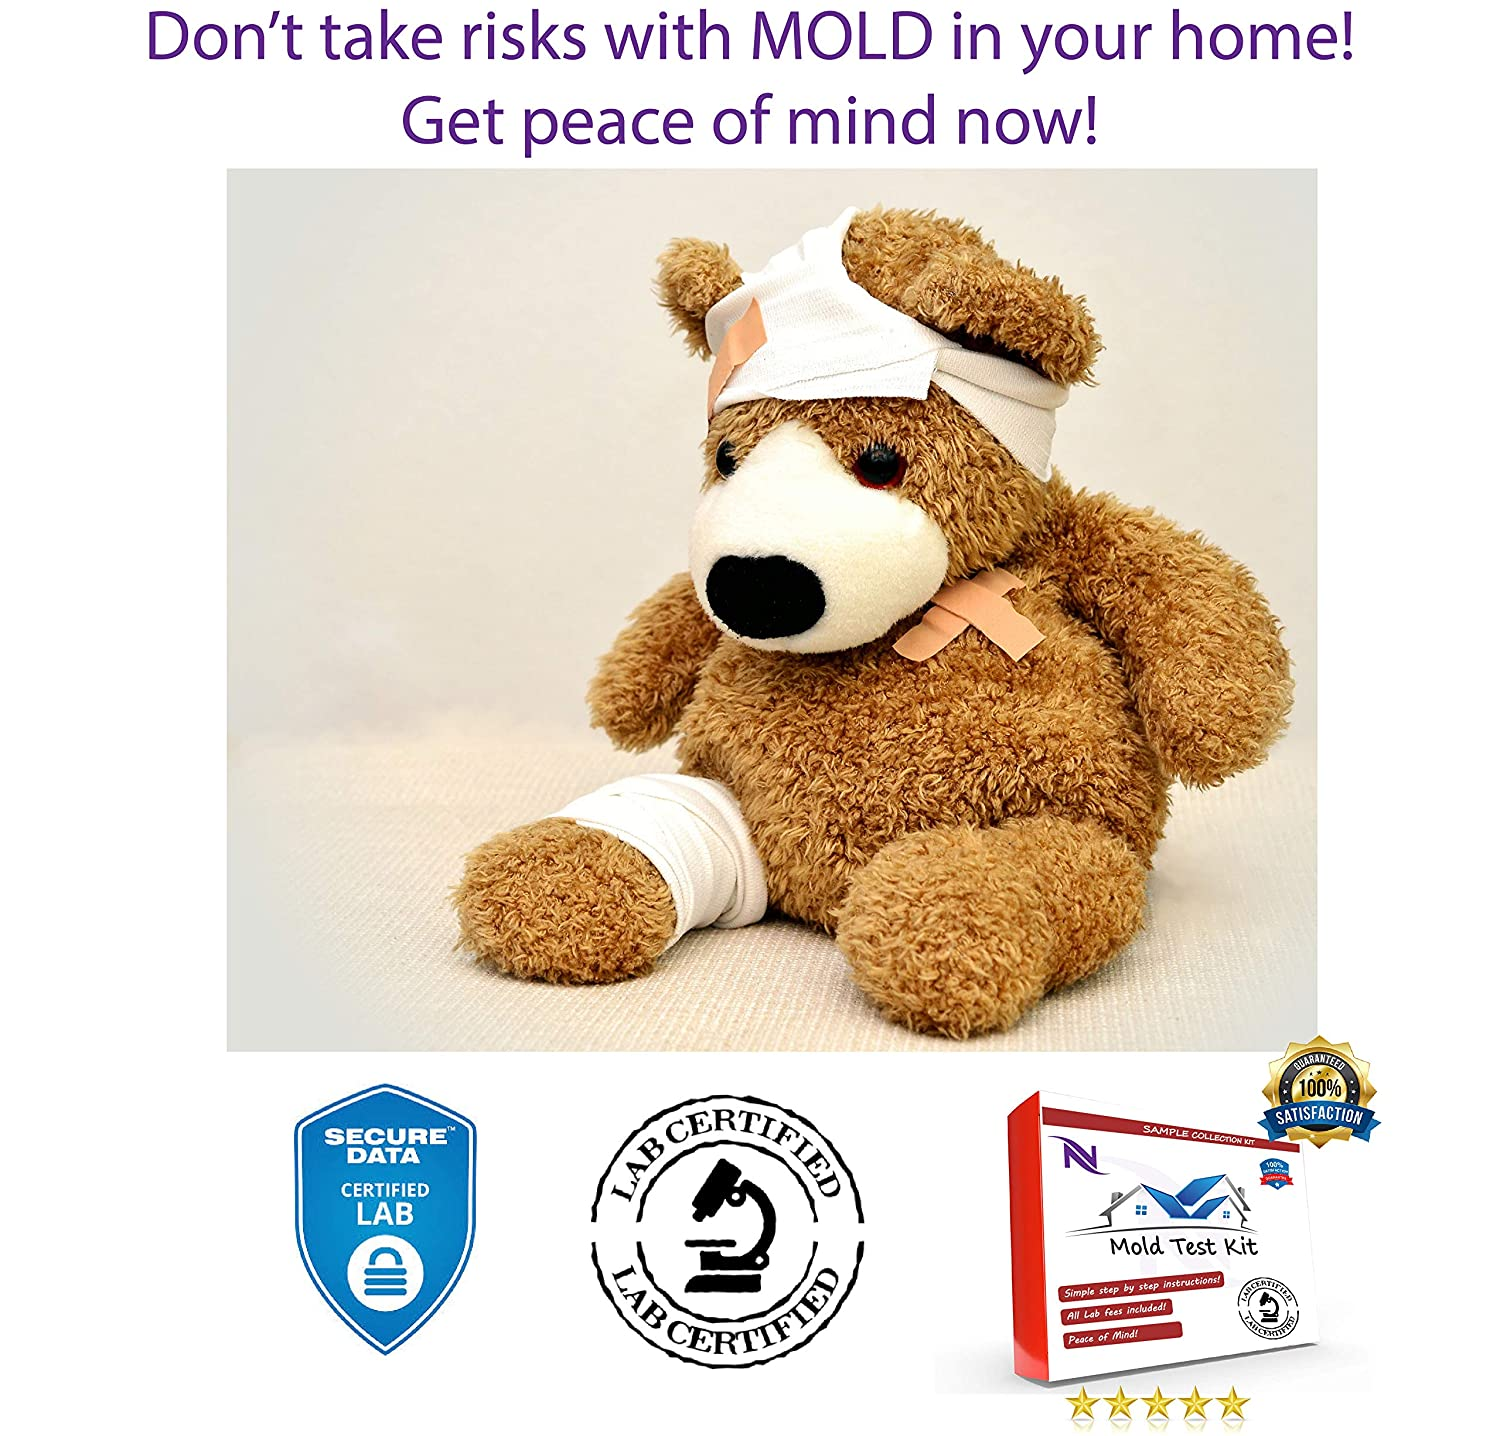 #1 Lab Certified Mold Test! 1 Tests Lab Analysis of Mold Samples Certified Mold Lab Test Lab Analysis and Expert Consultation Included